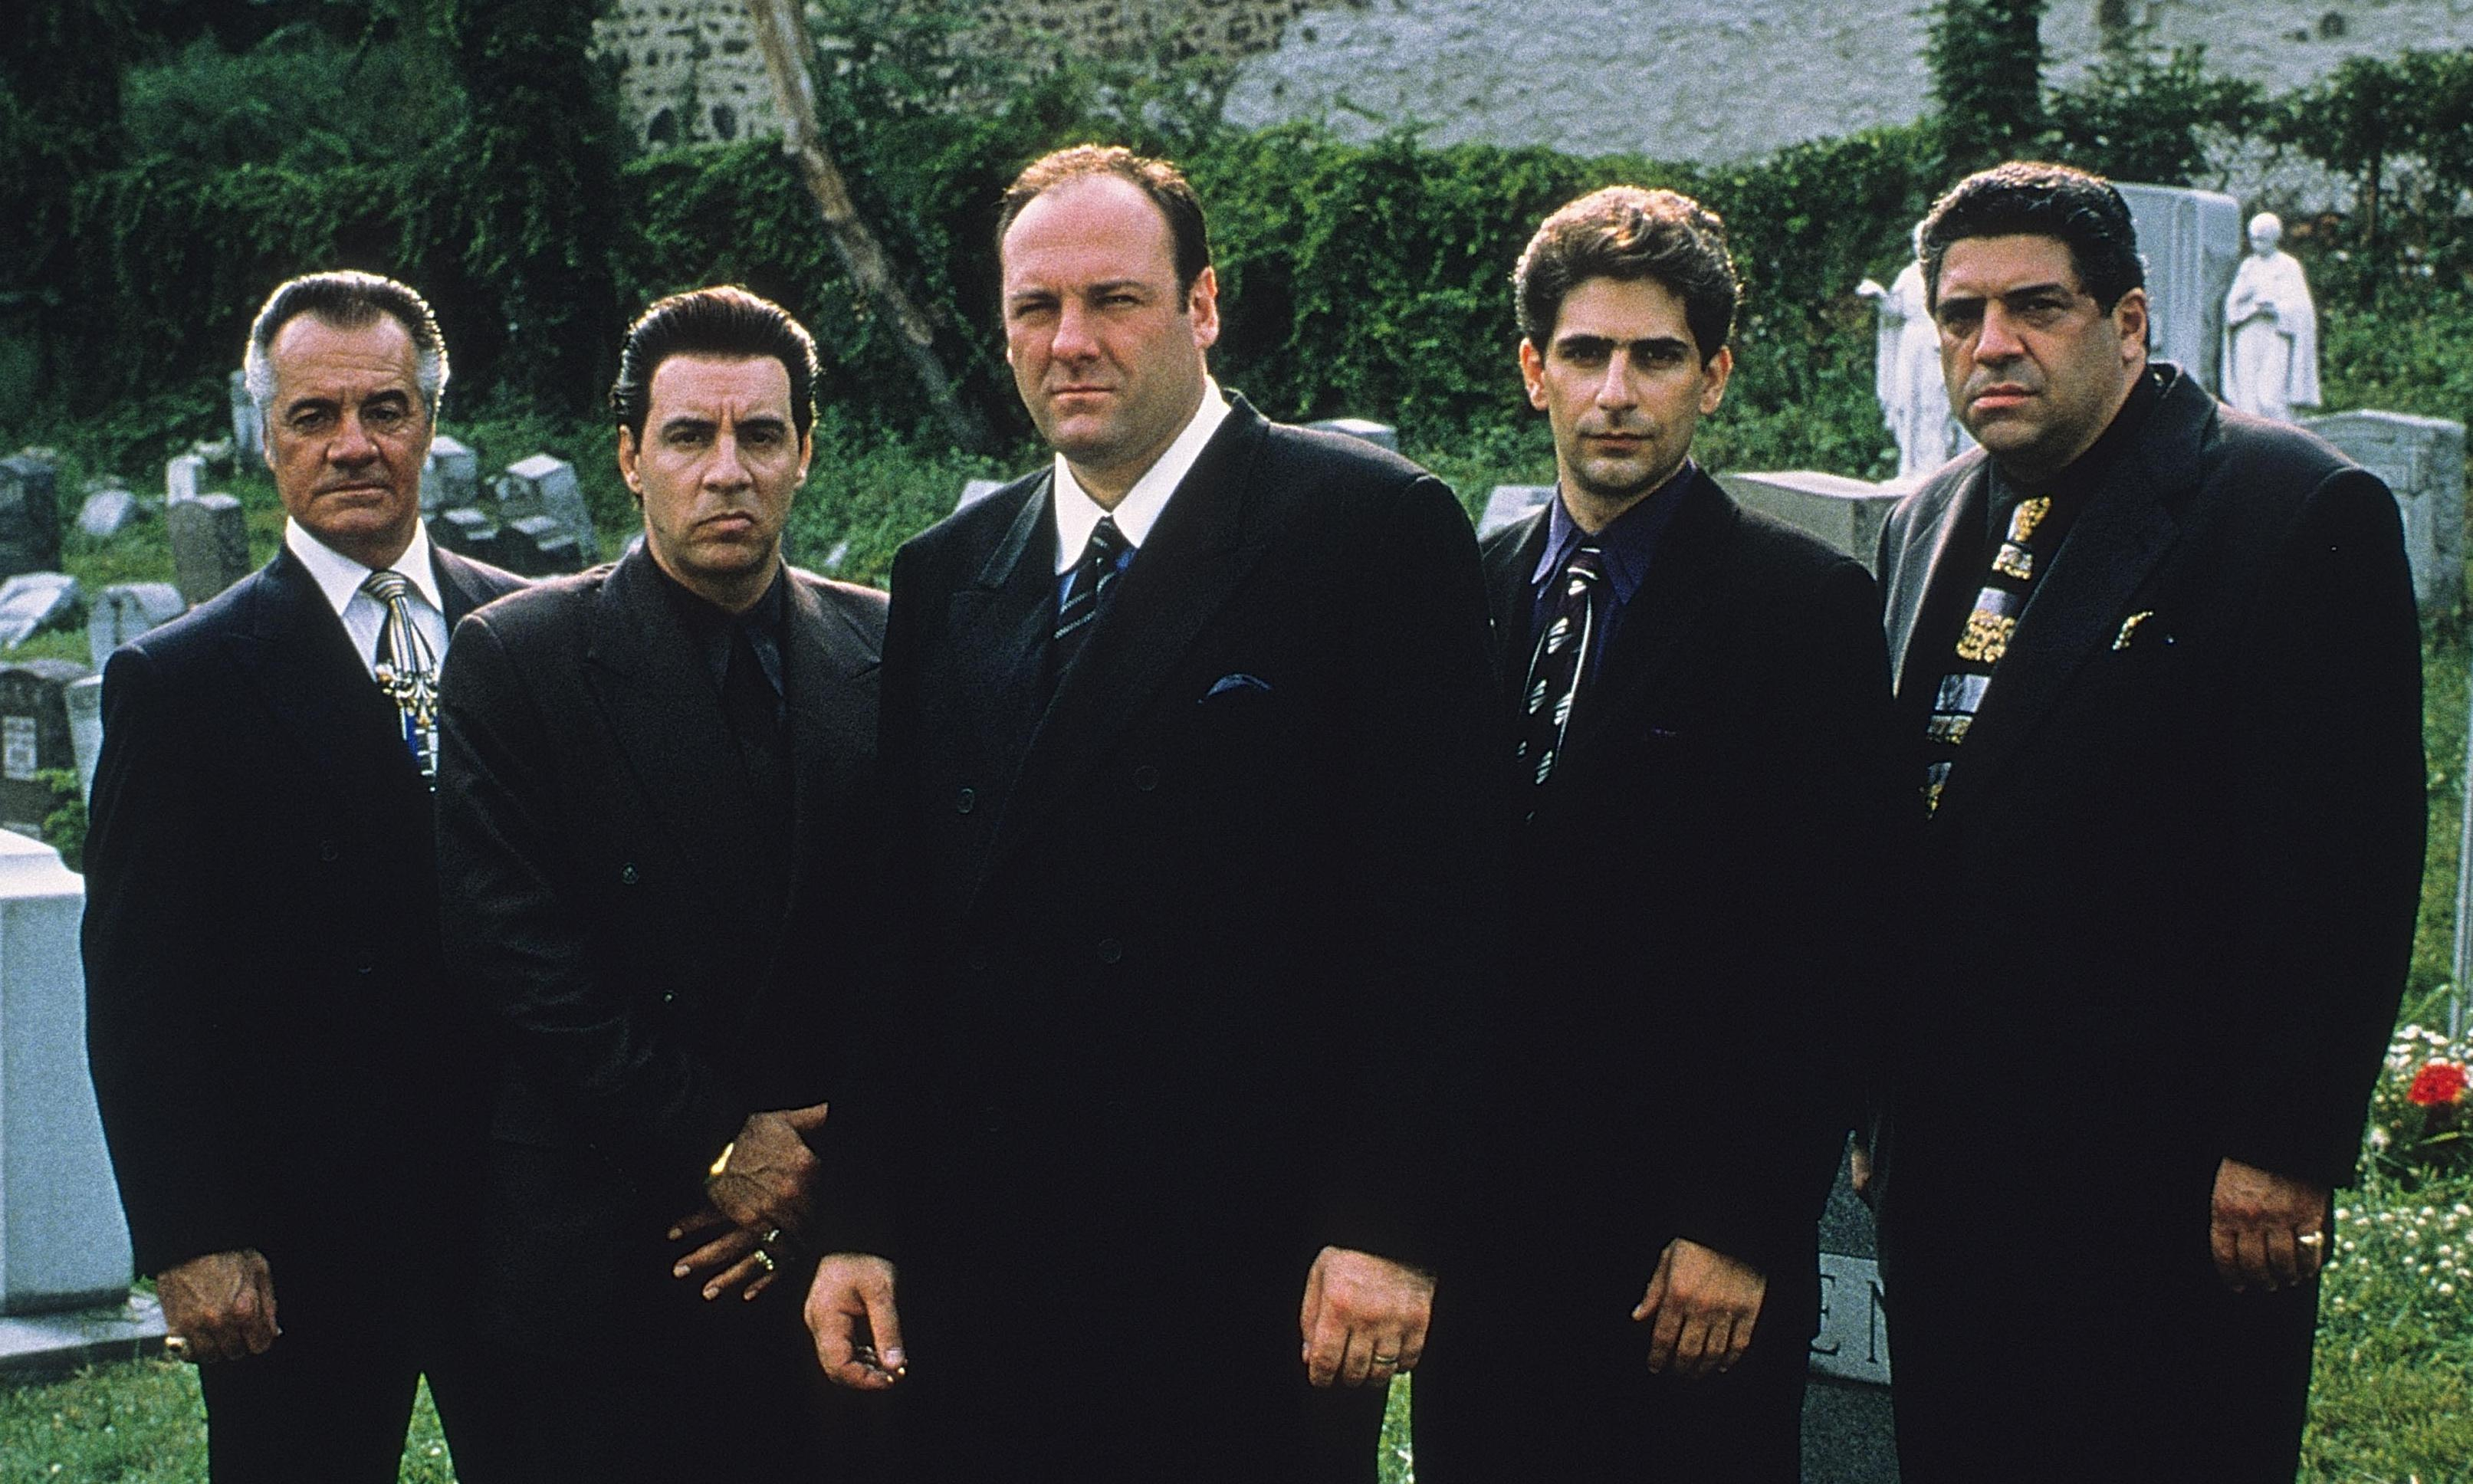 David Chase on why he wrote The Sopranos: 'I needed help. I needed therapy'